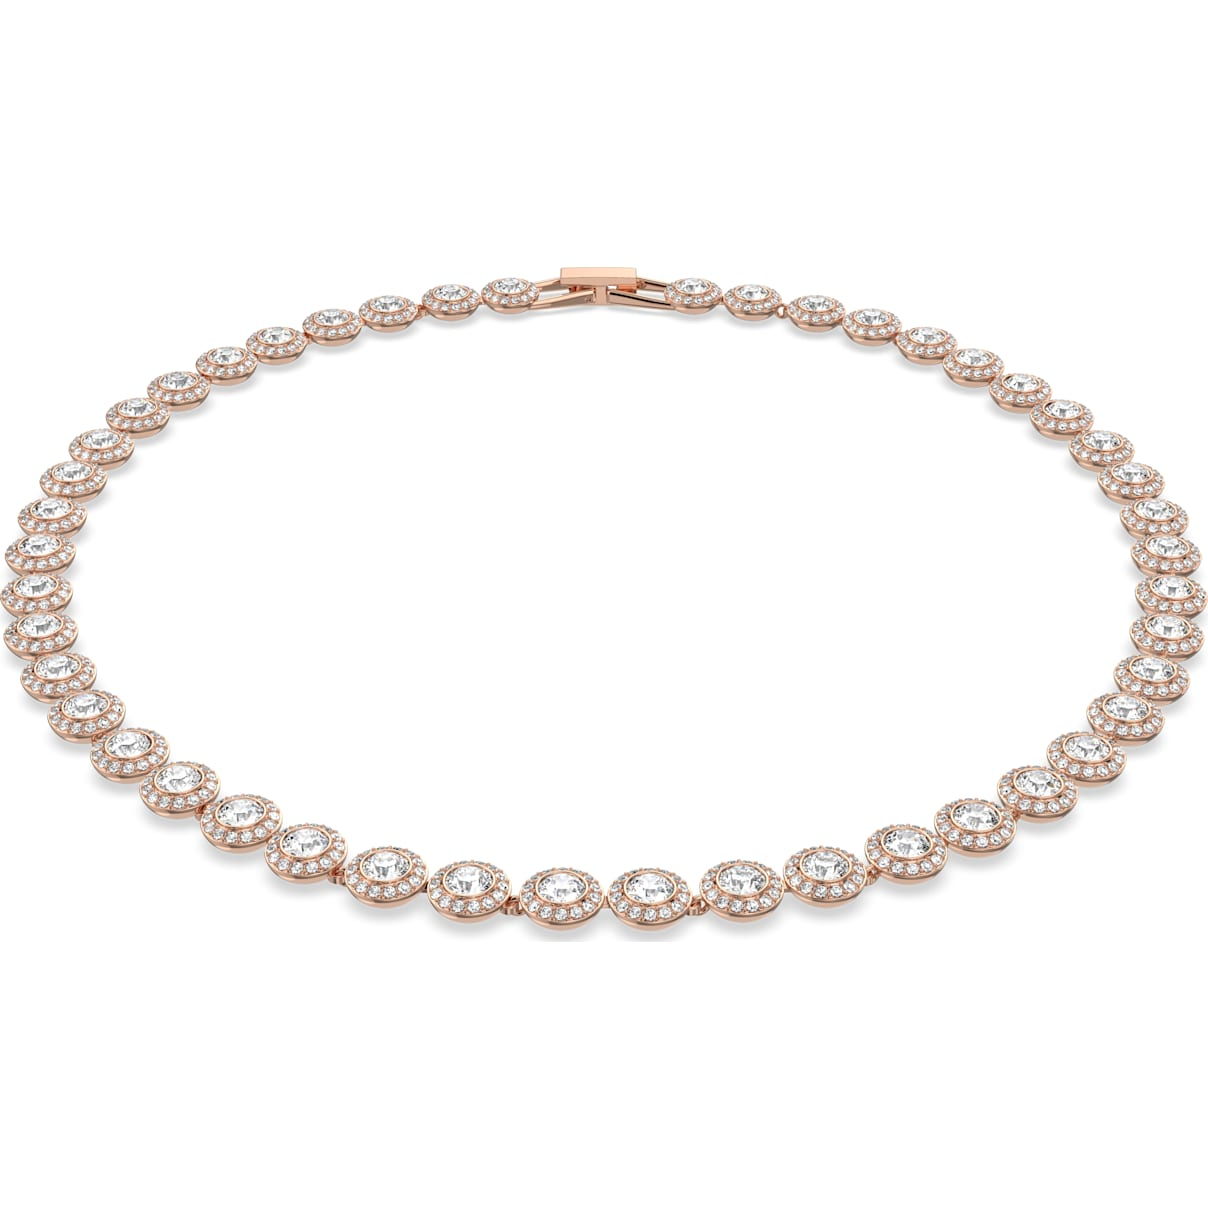 Swarovski Angelic Necklace, White, Rose-gold tone plated